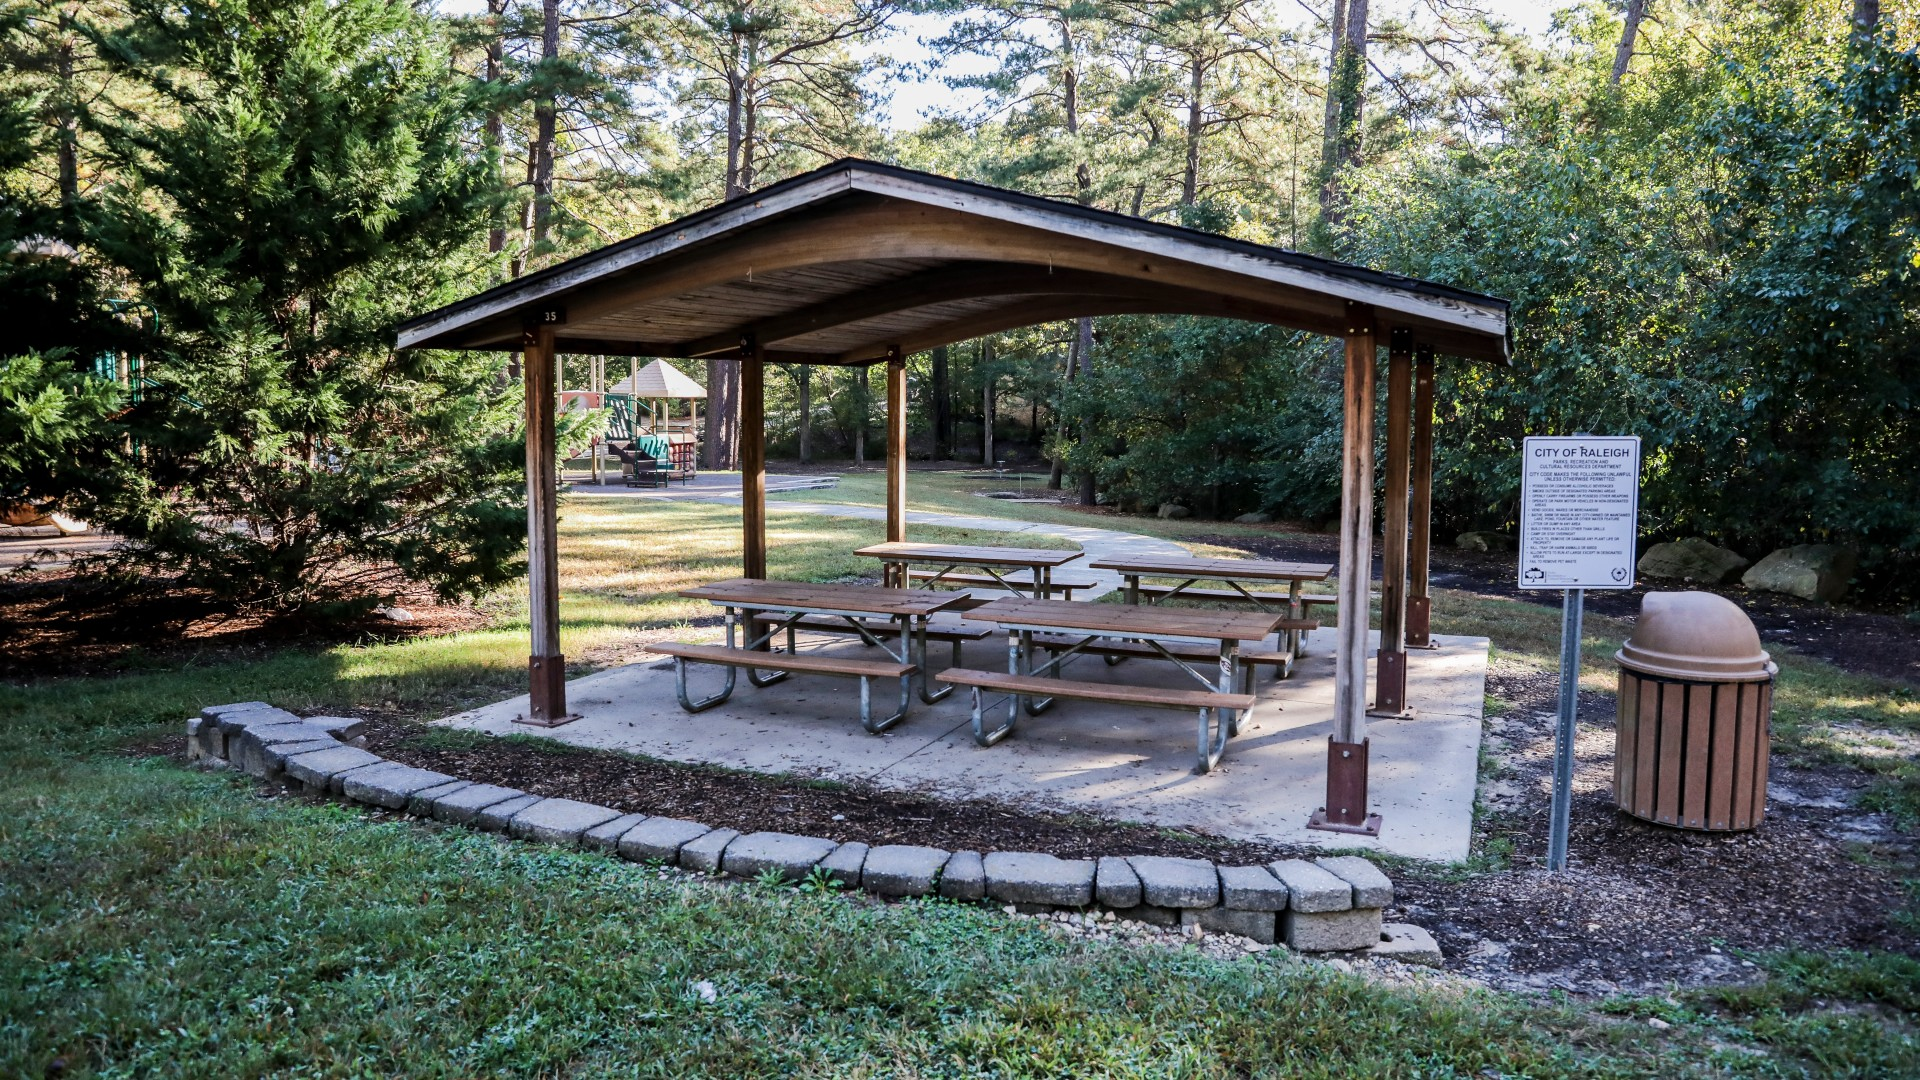 Picnic shelter with four tables and one grill at Kentwood Park